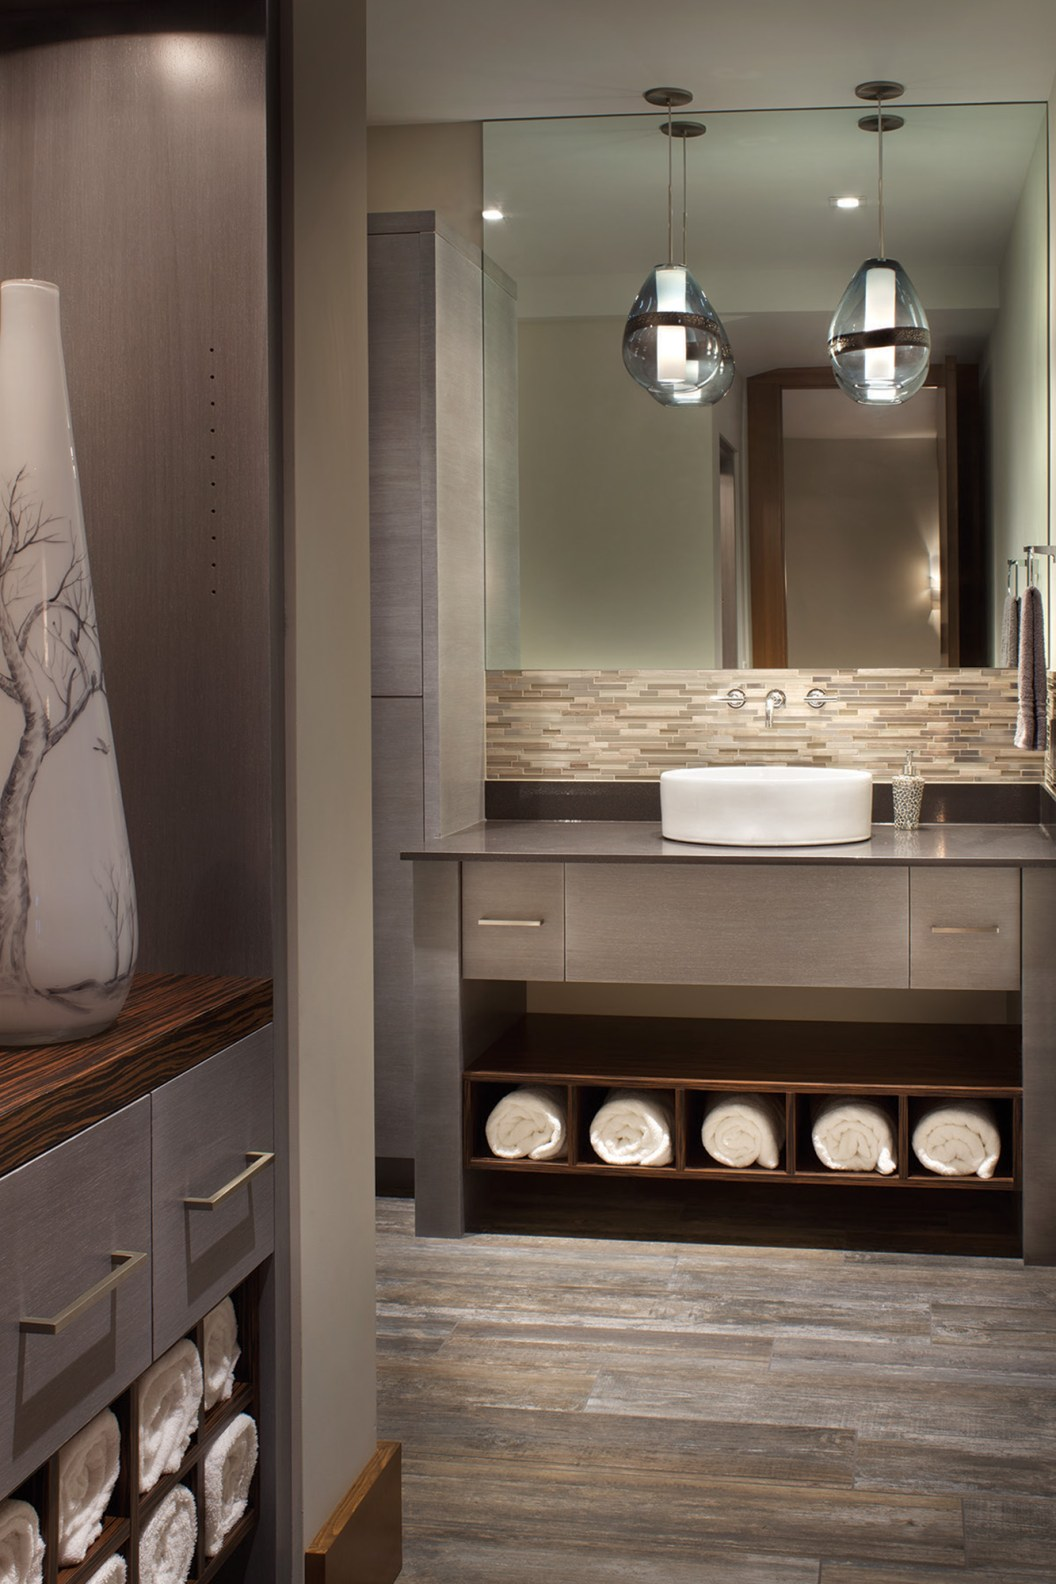 The unique material pallete comes together in a spectacular fashion, even in the powder room.